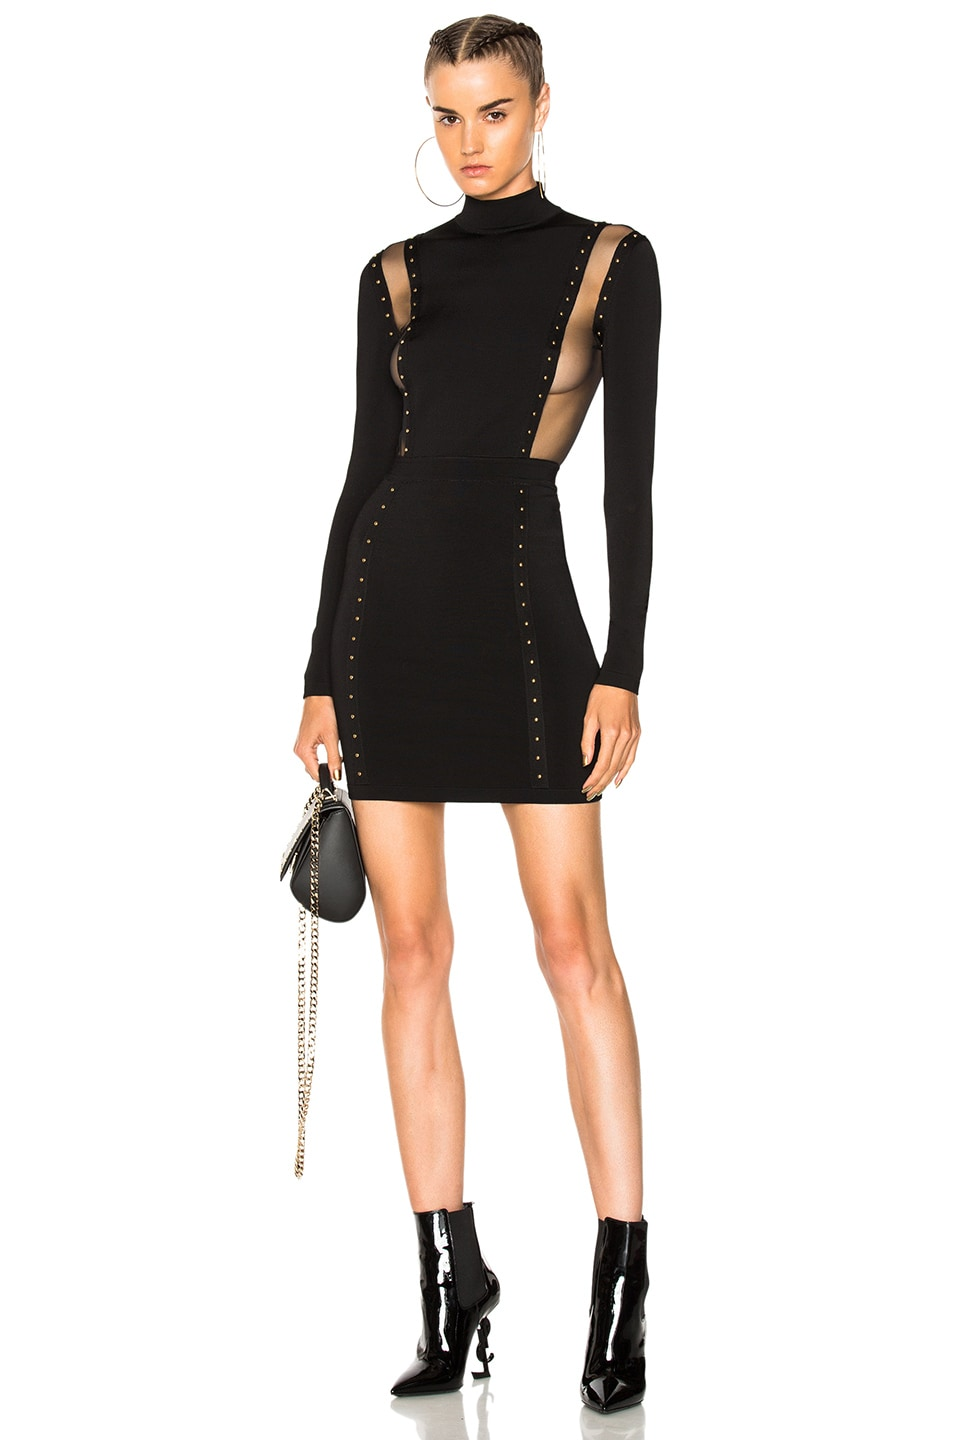 5e6bb5a3 Image 1 of BALMAIN Studded Mini Dress in Black